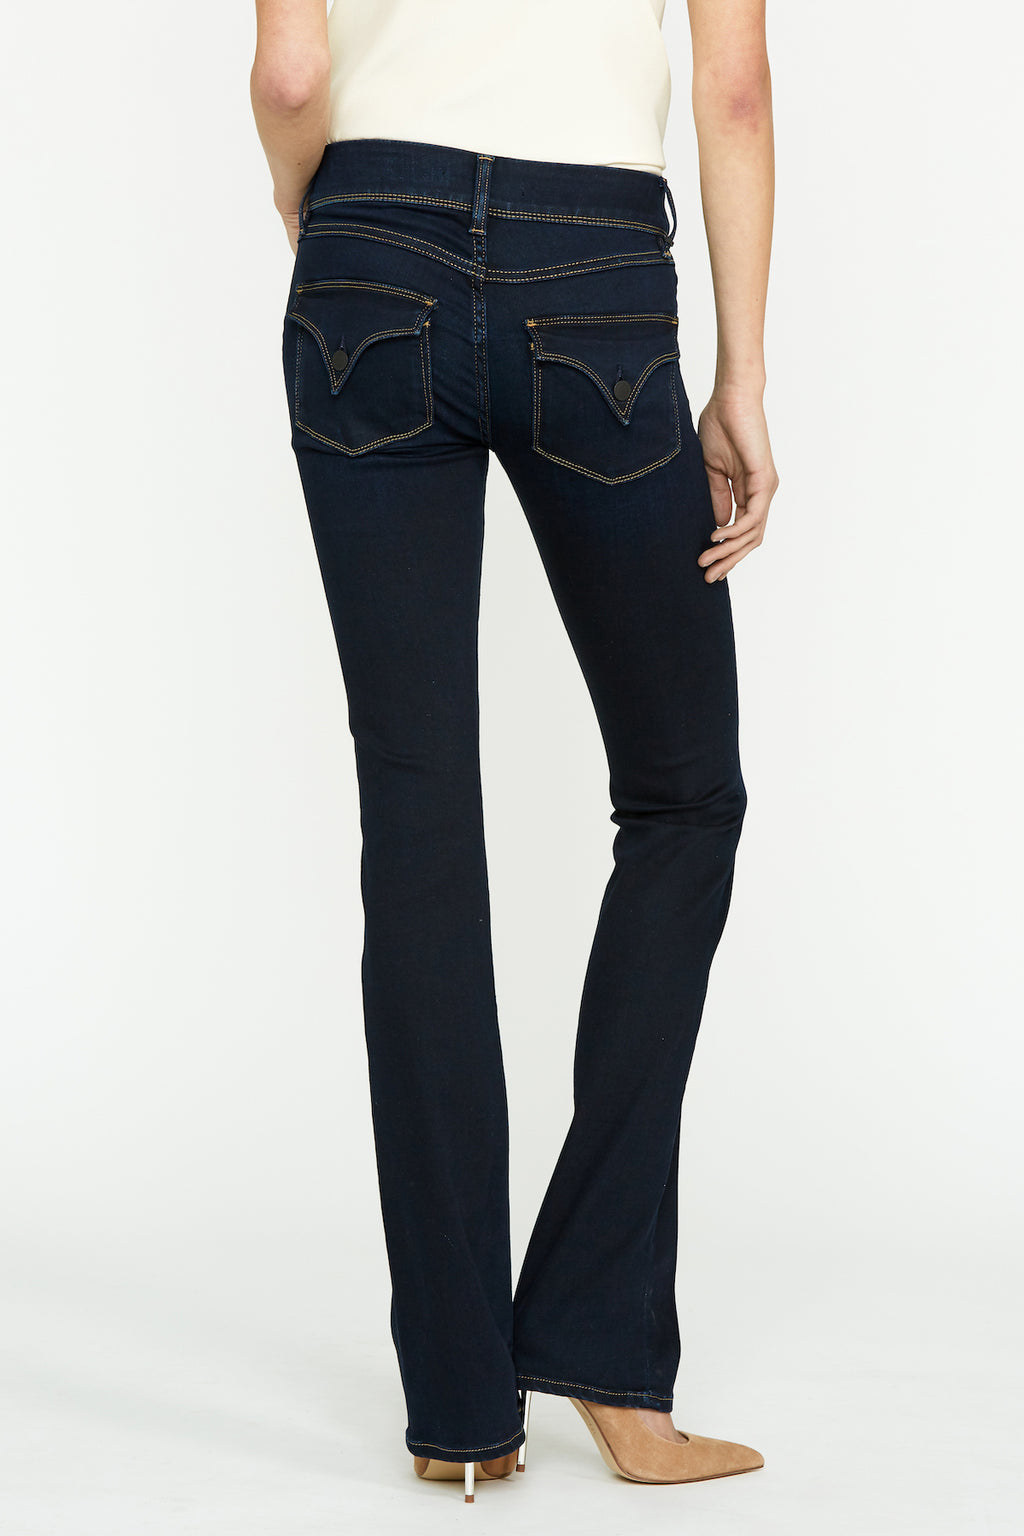 Beth Mid-Rise Baby Bootcut Jean - hudsonjeans